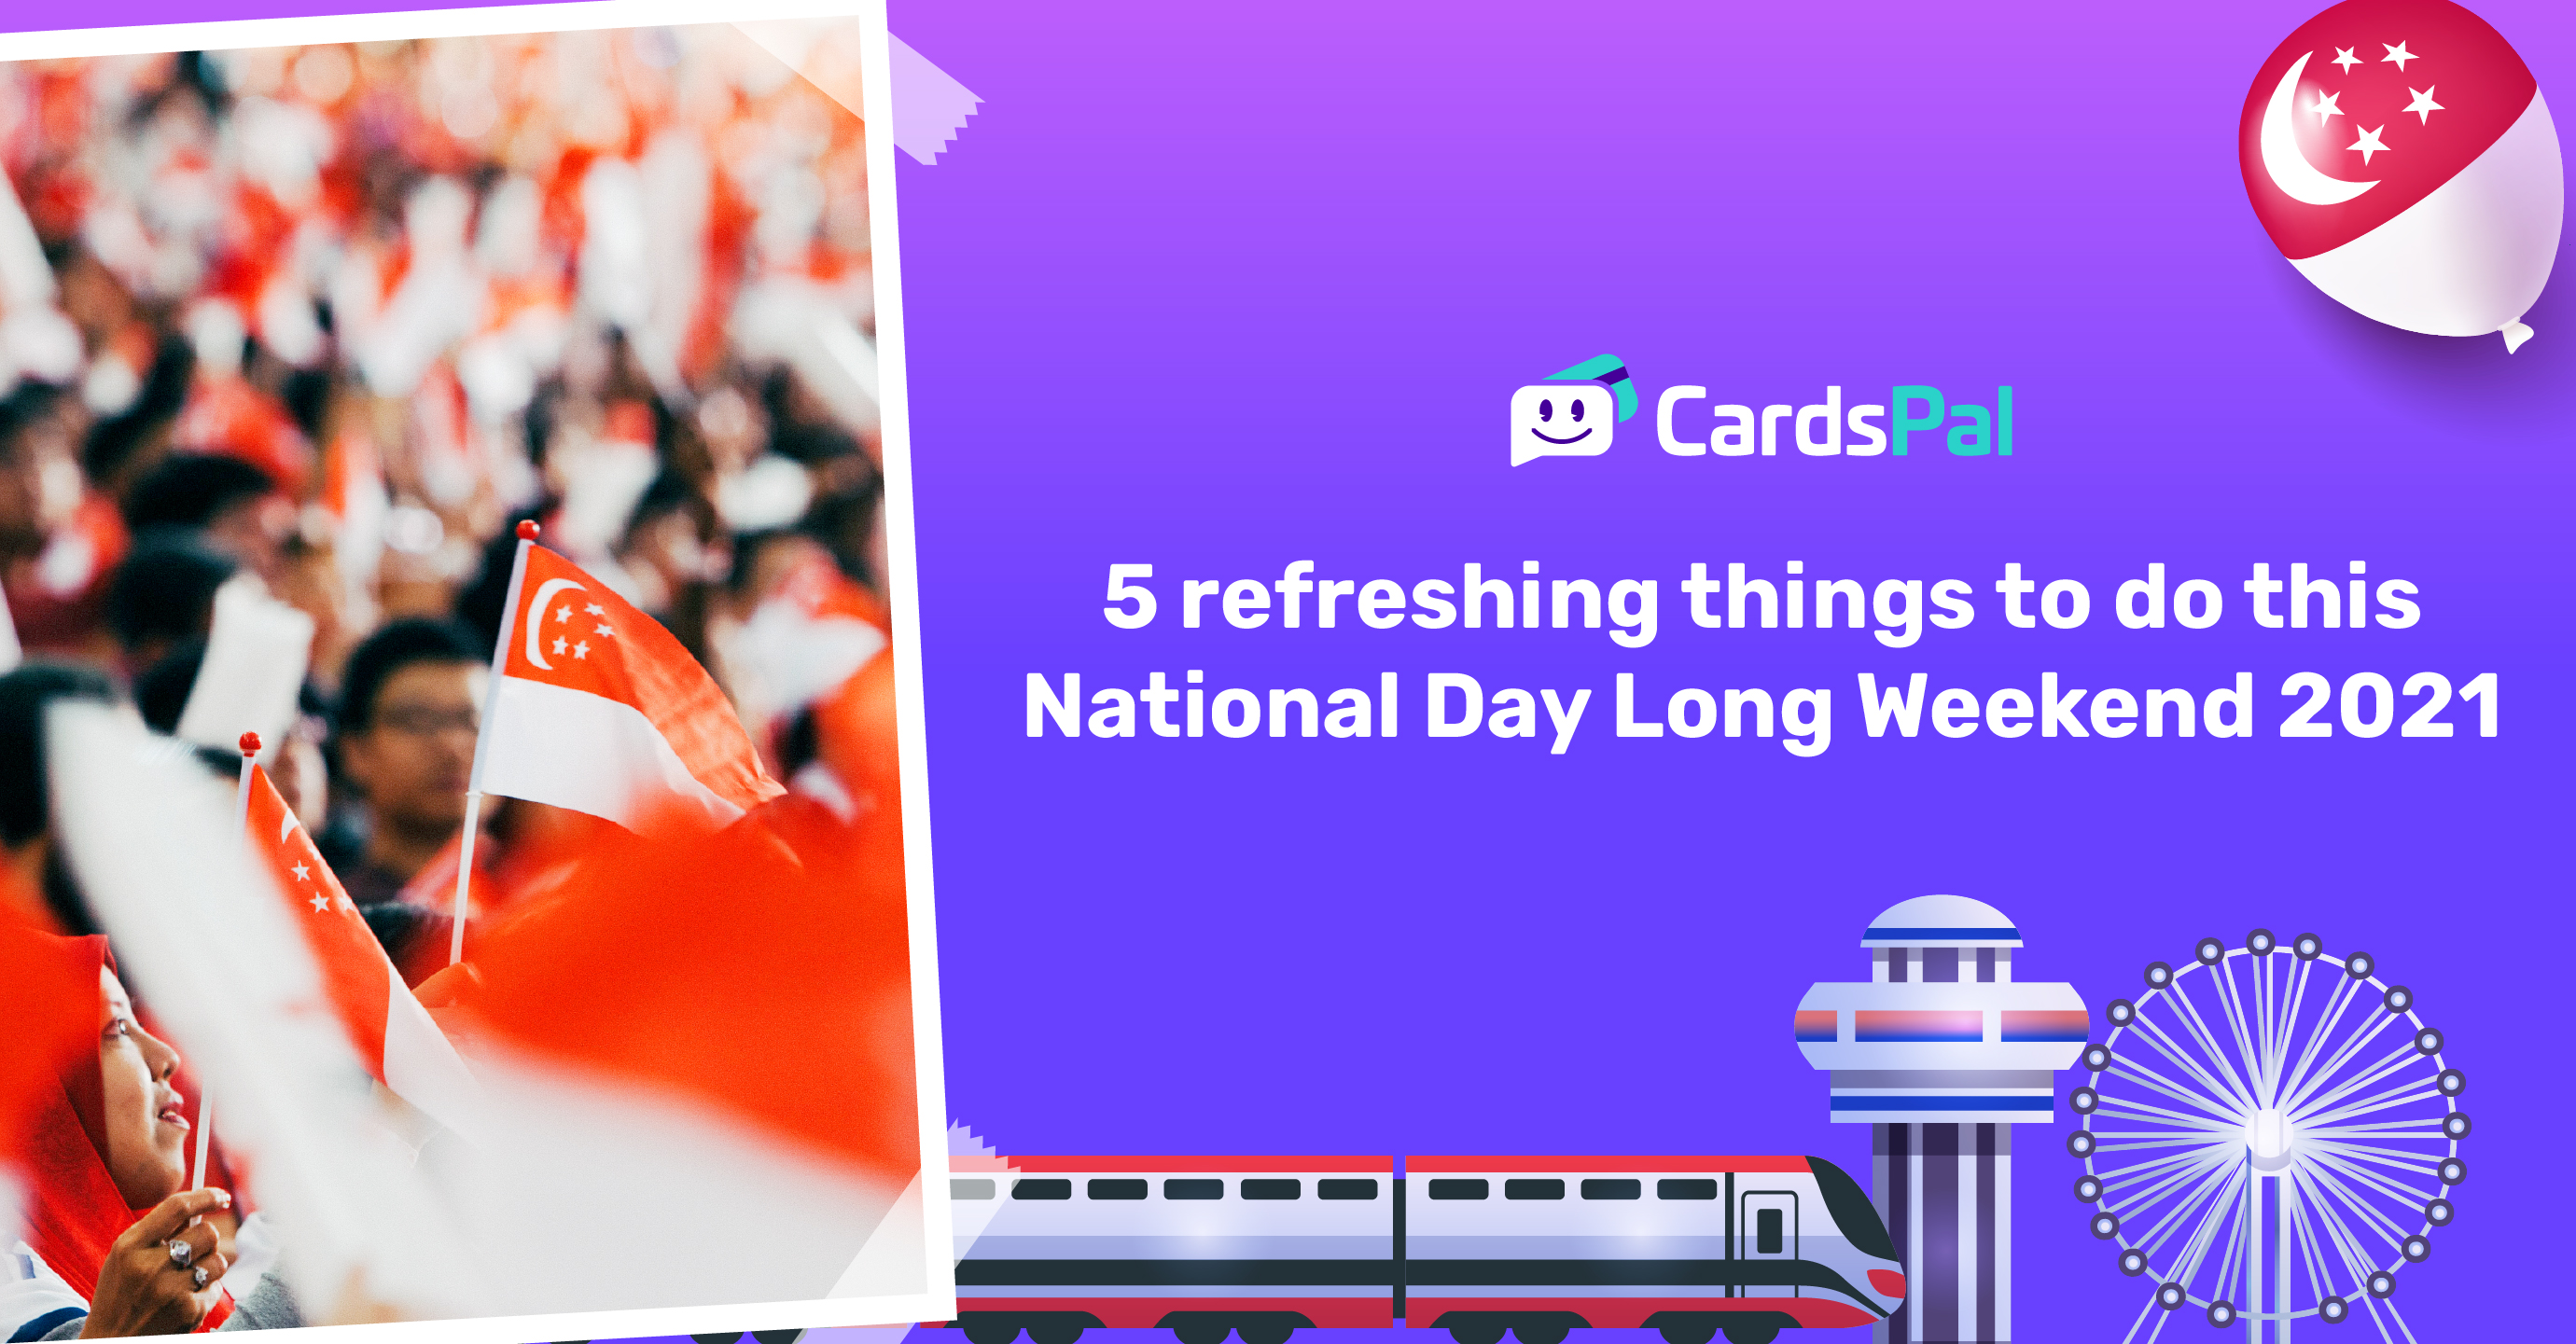 5 refreshing things to do this National Day long weekend 2021